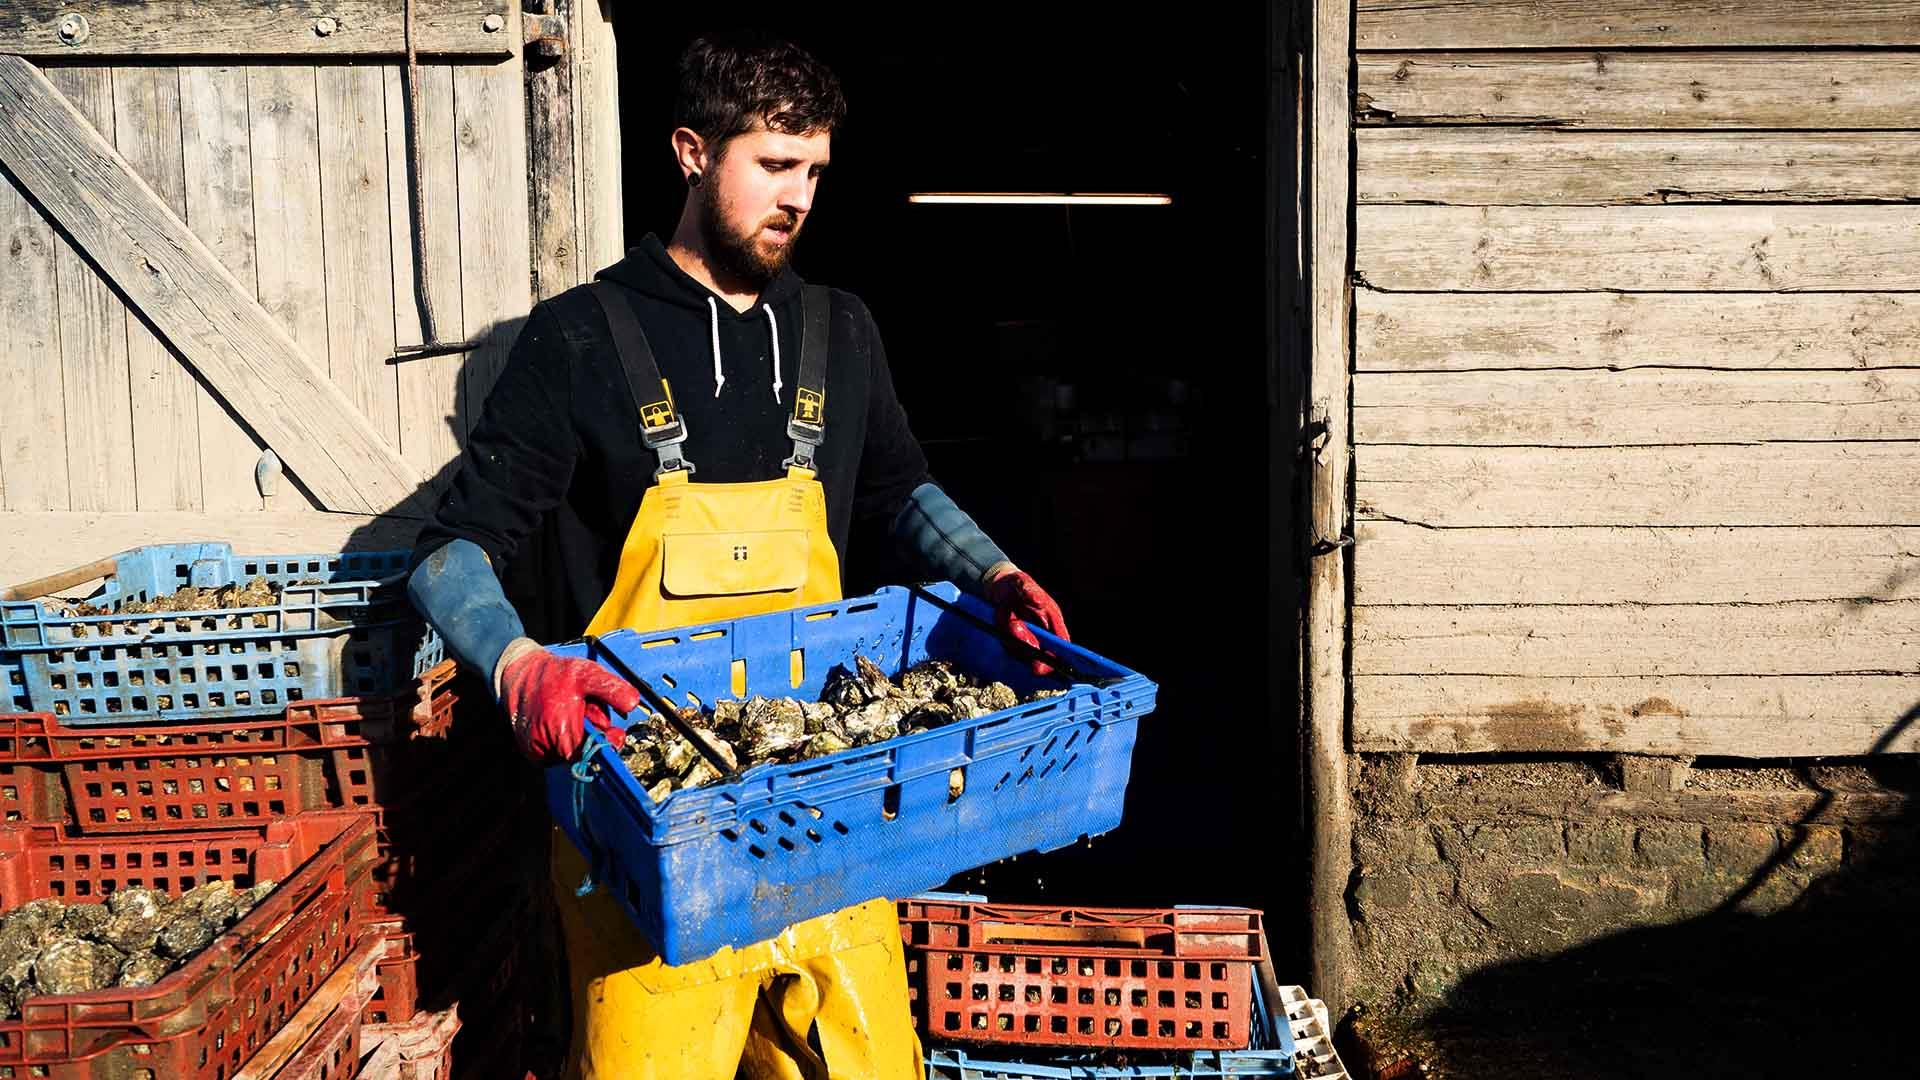 British oyster farmers served up a raw deal in Brexit uncertainty